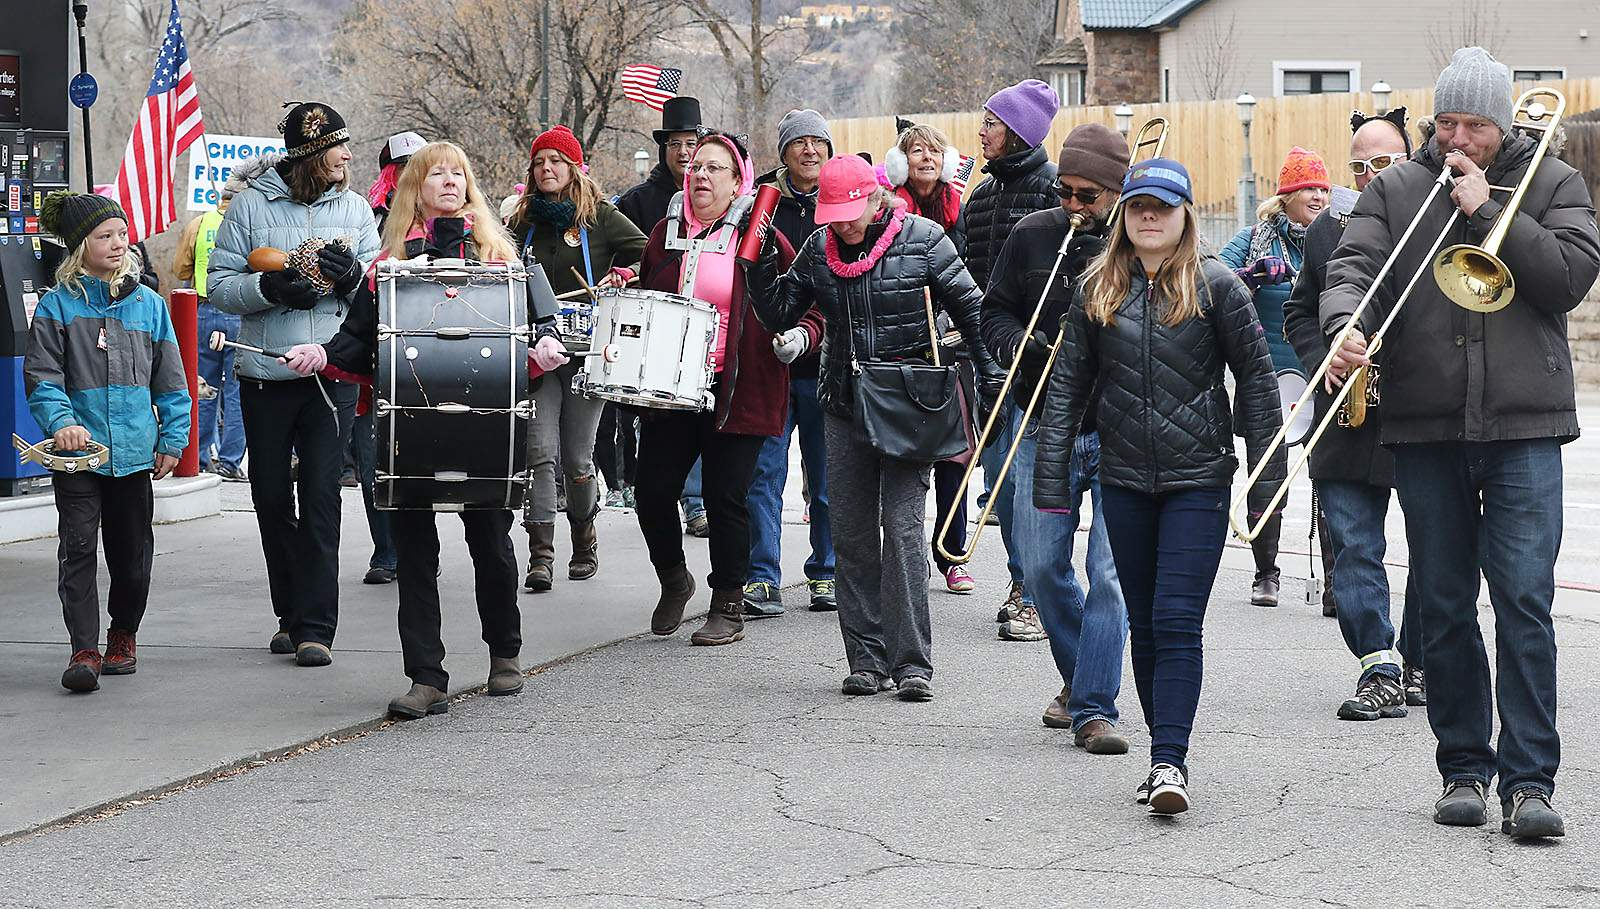 Durango Street Band brings music wherever it's needed